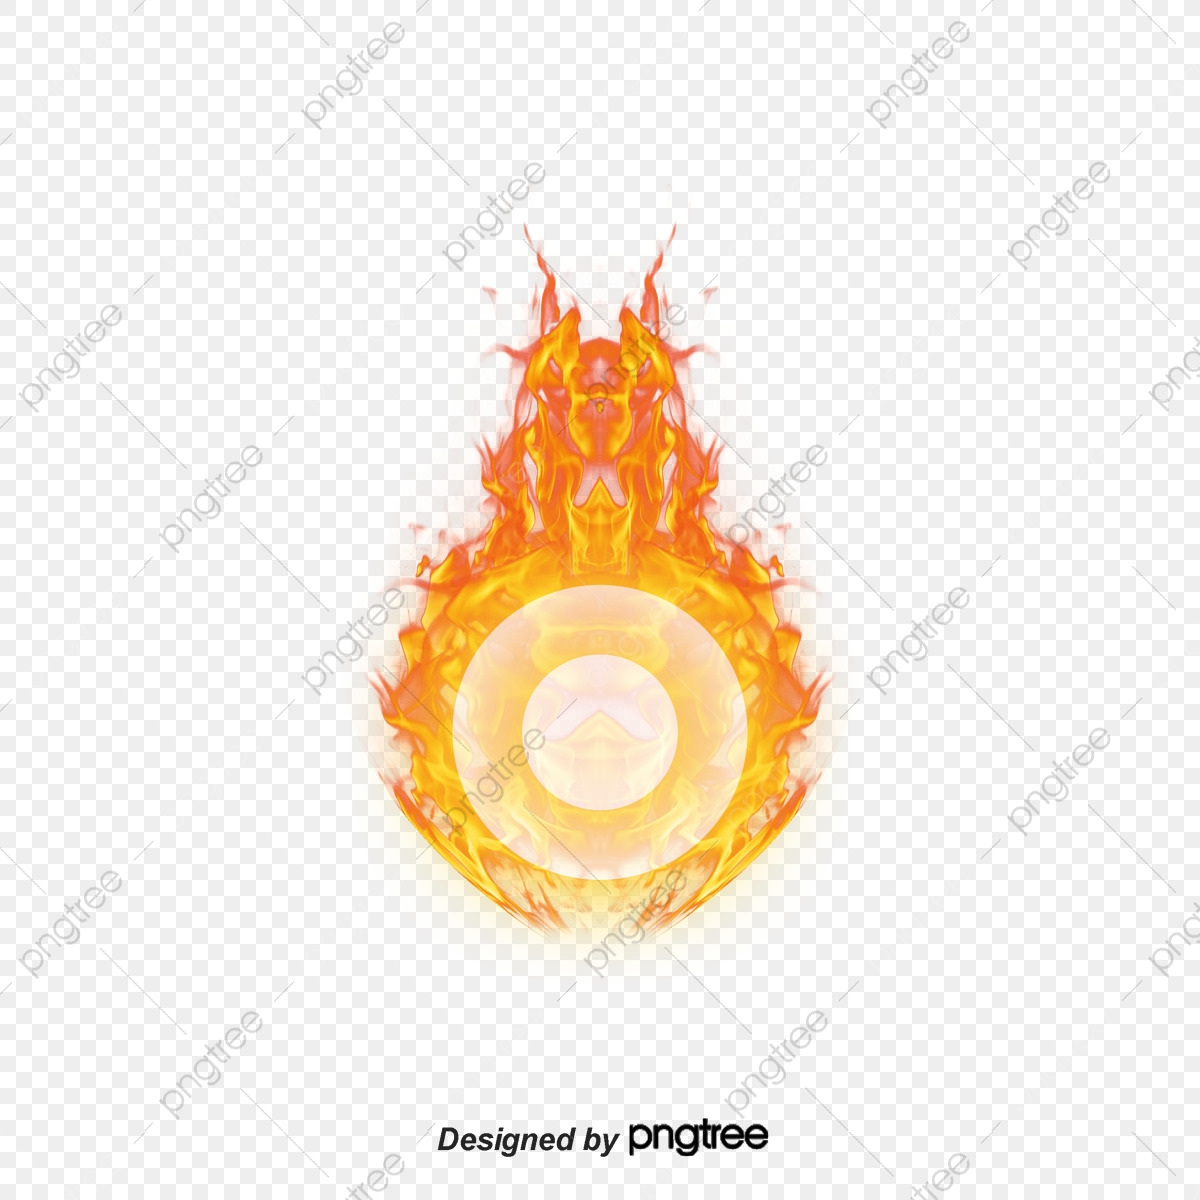 Fire Hd Disc Image Flame Music Cd Smoke Png Transparent Clipart